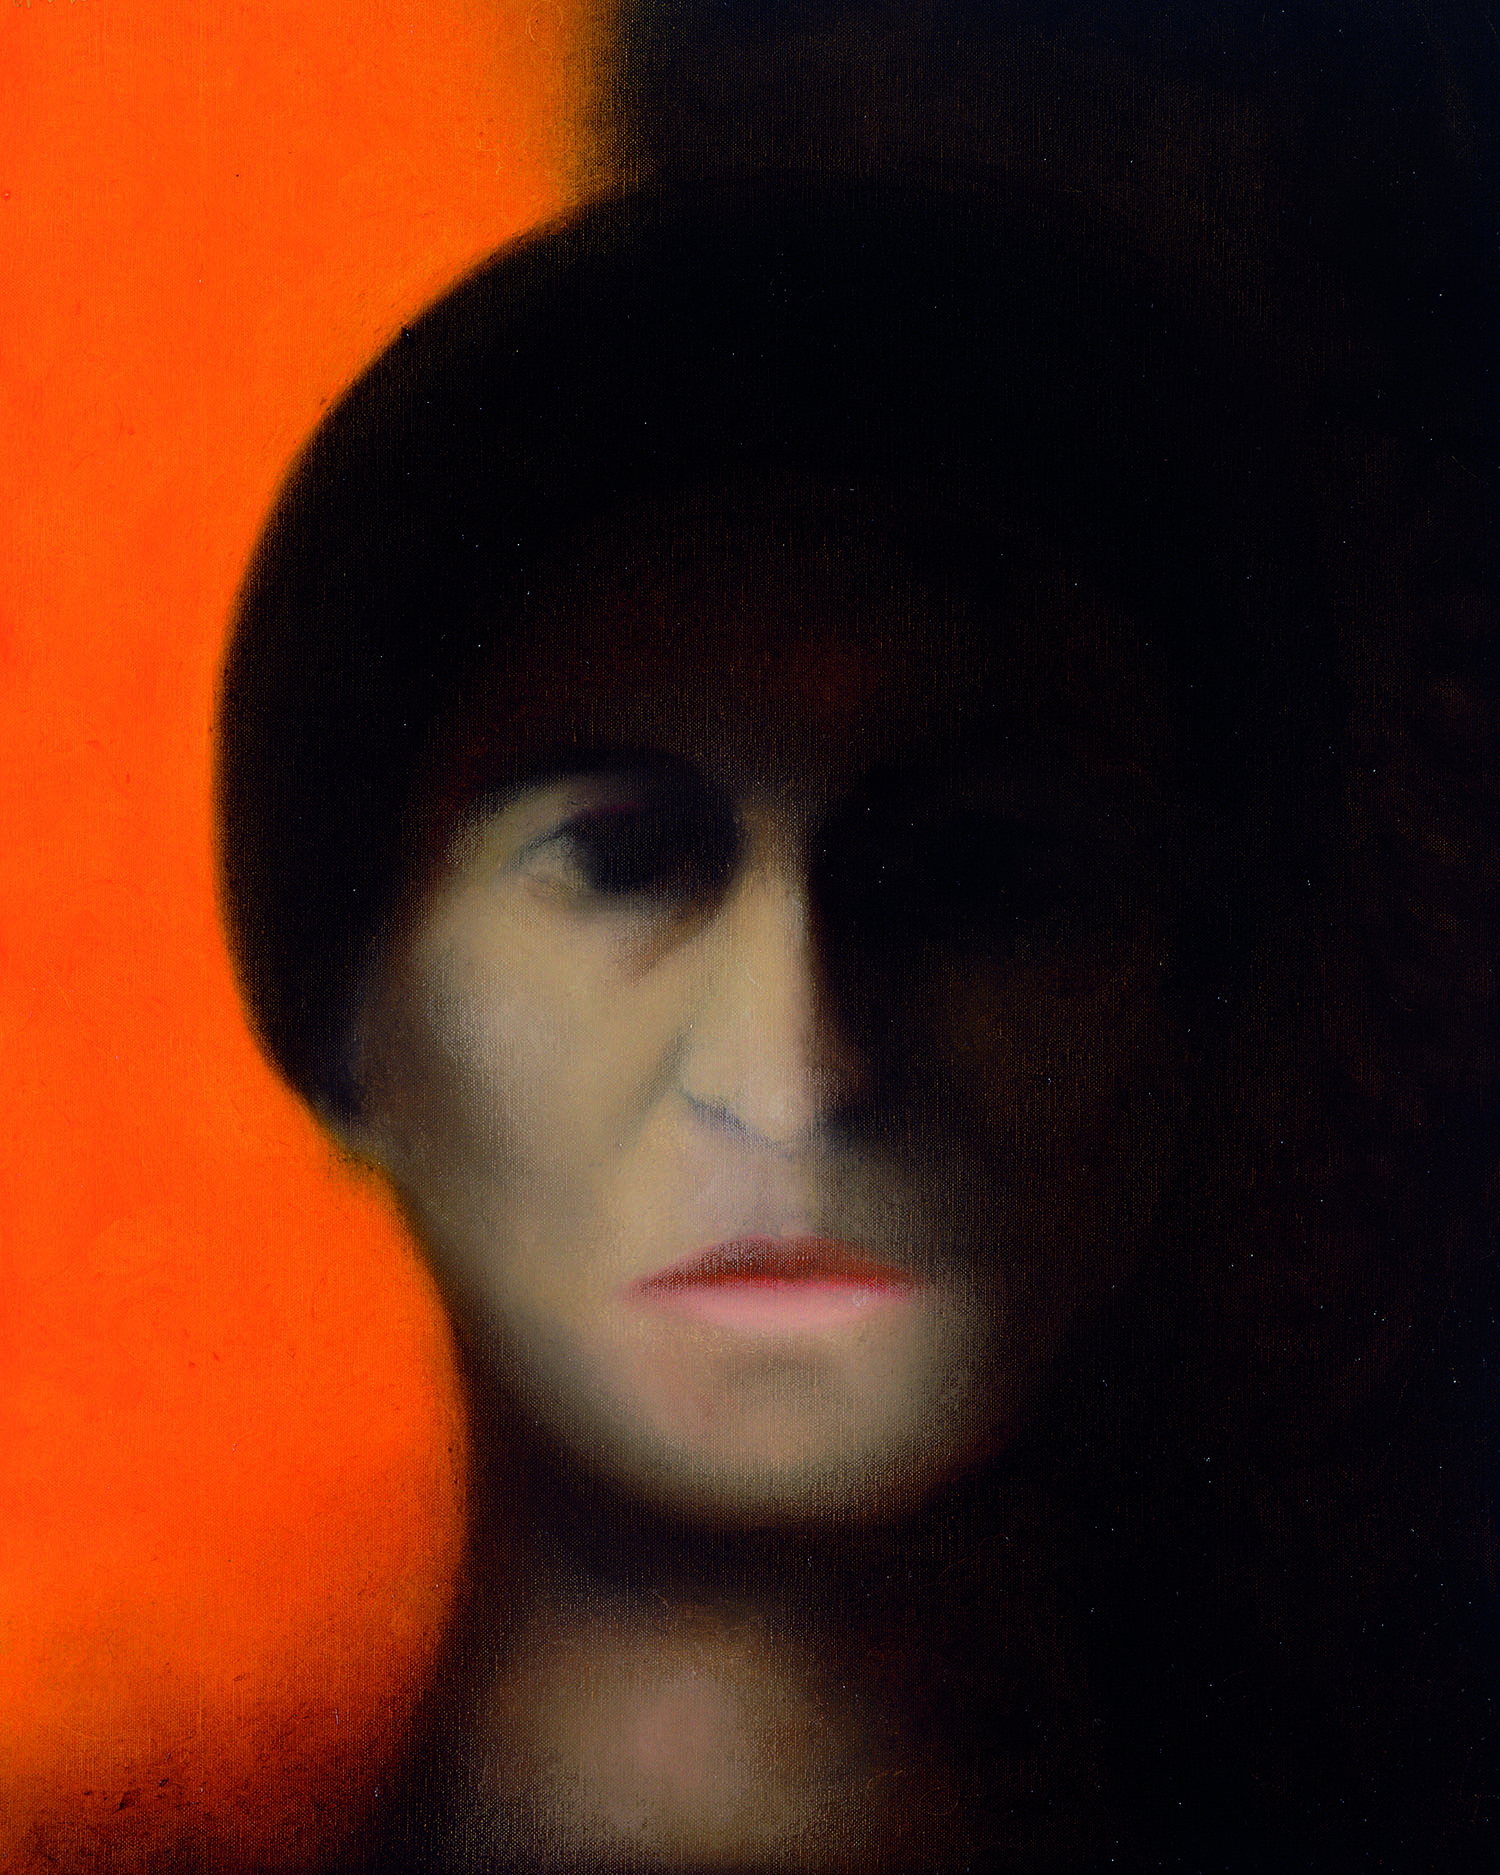 Shadow. Josep Navarro Vives. 2000, oil on canvas, cm 41 x 33.